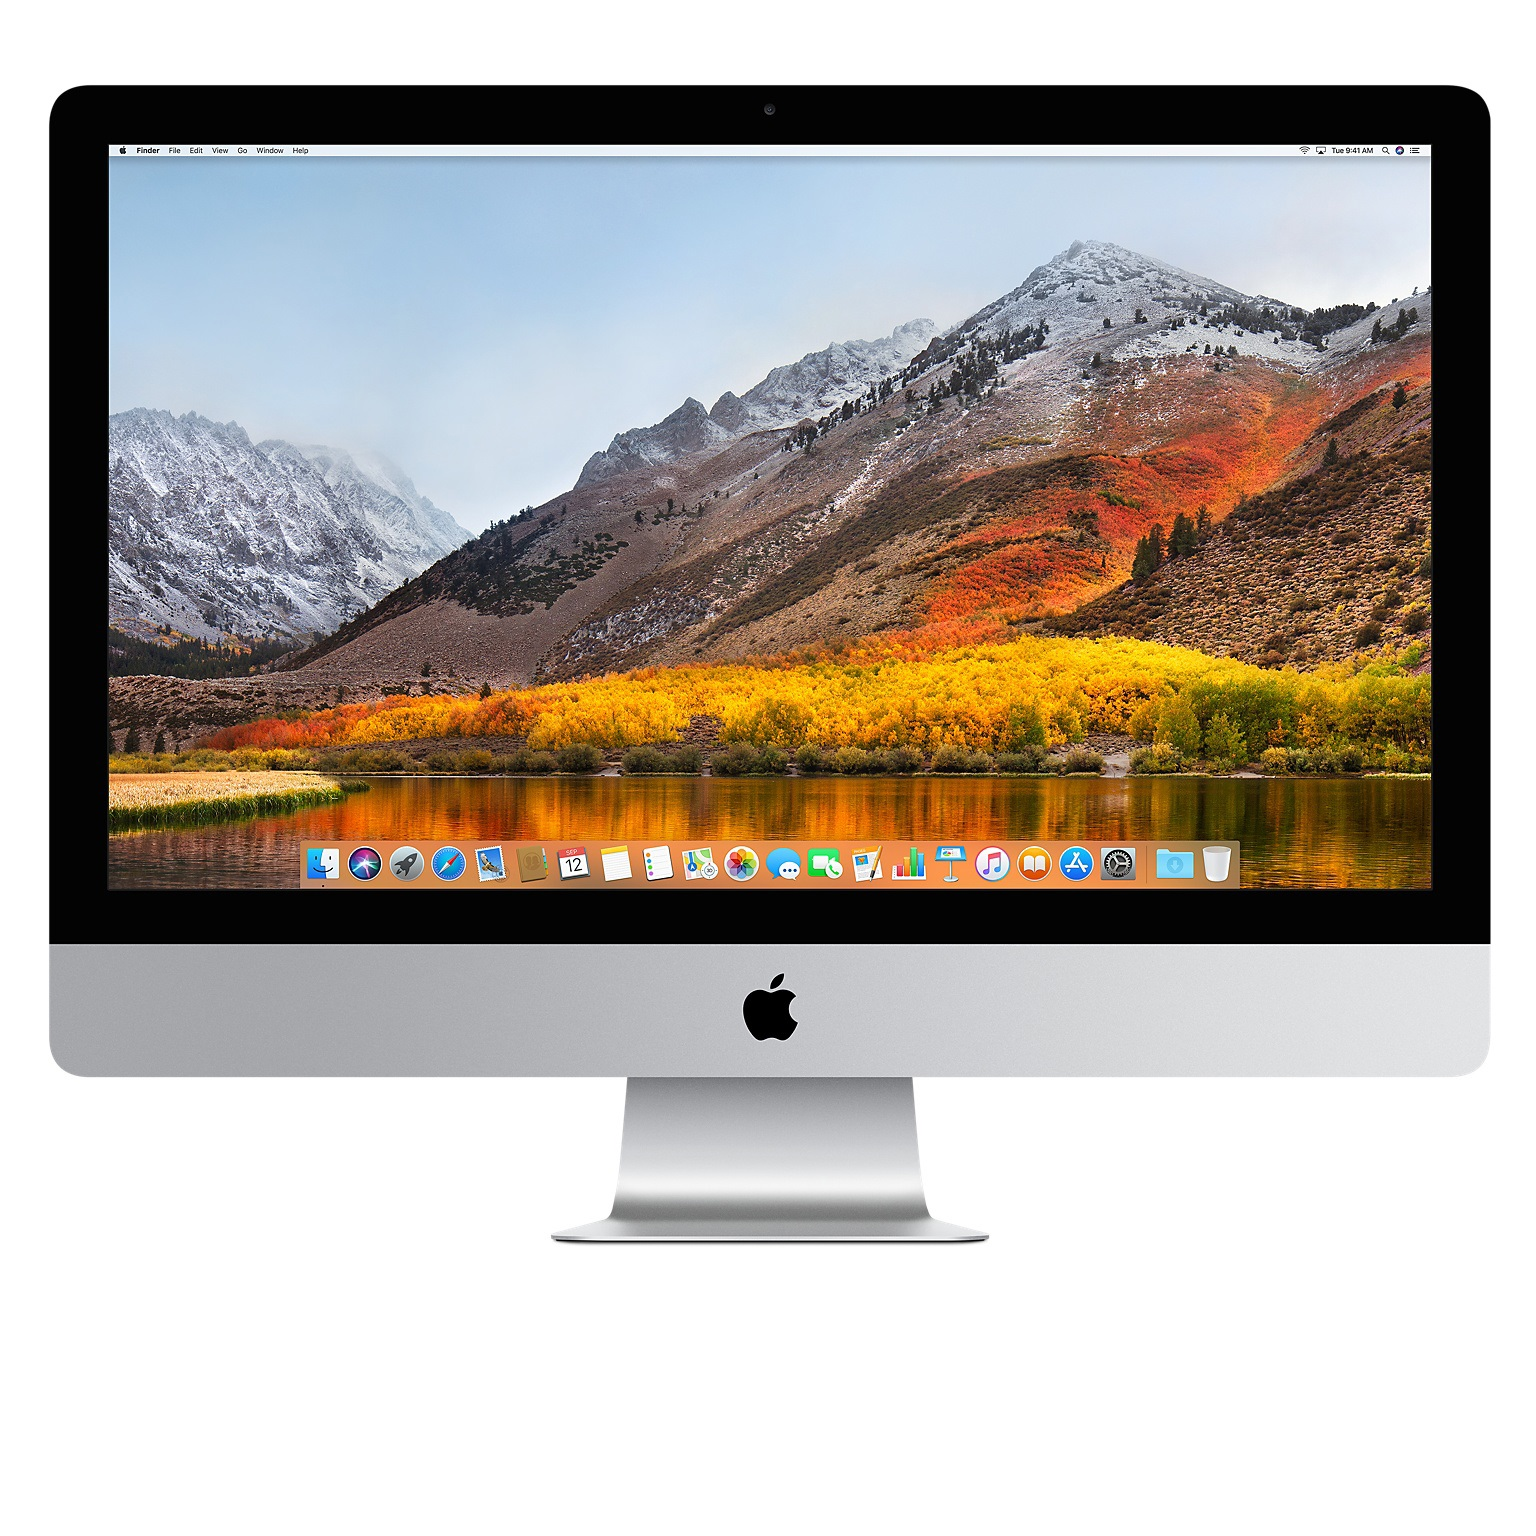 Apple iMac 21.5 inch Late 2015